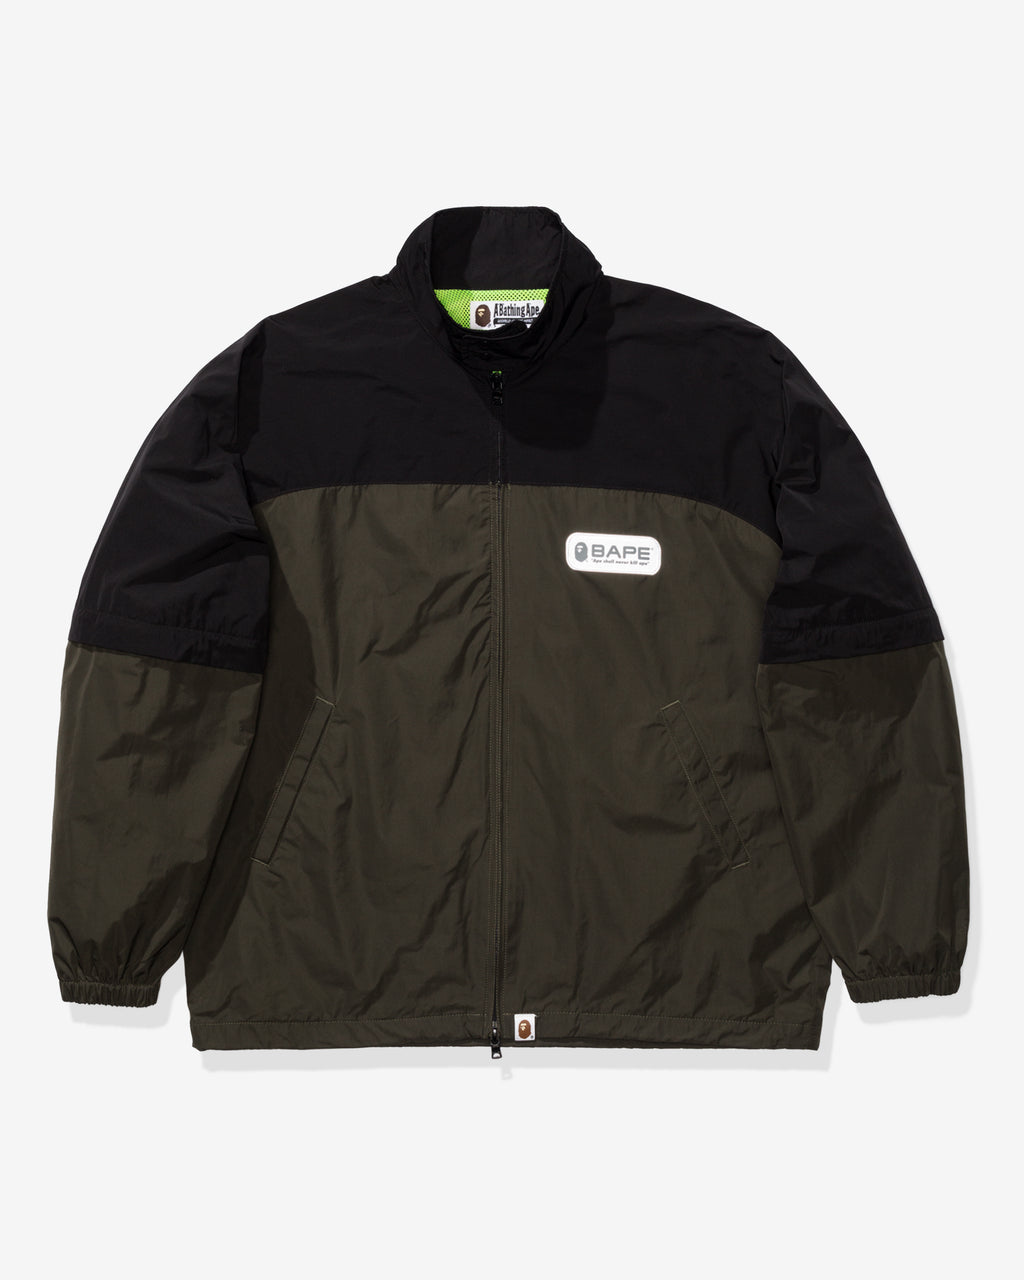 BAPE DETACHABLE SLEEVE JACKET - GREEN